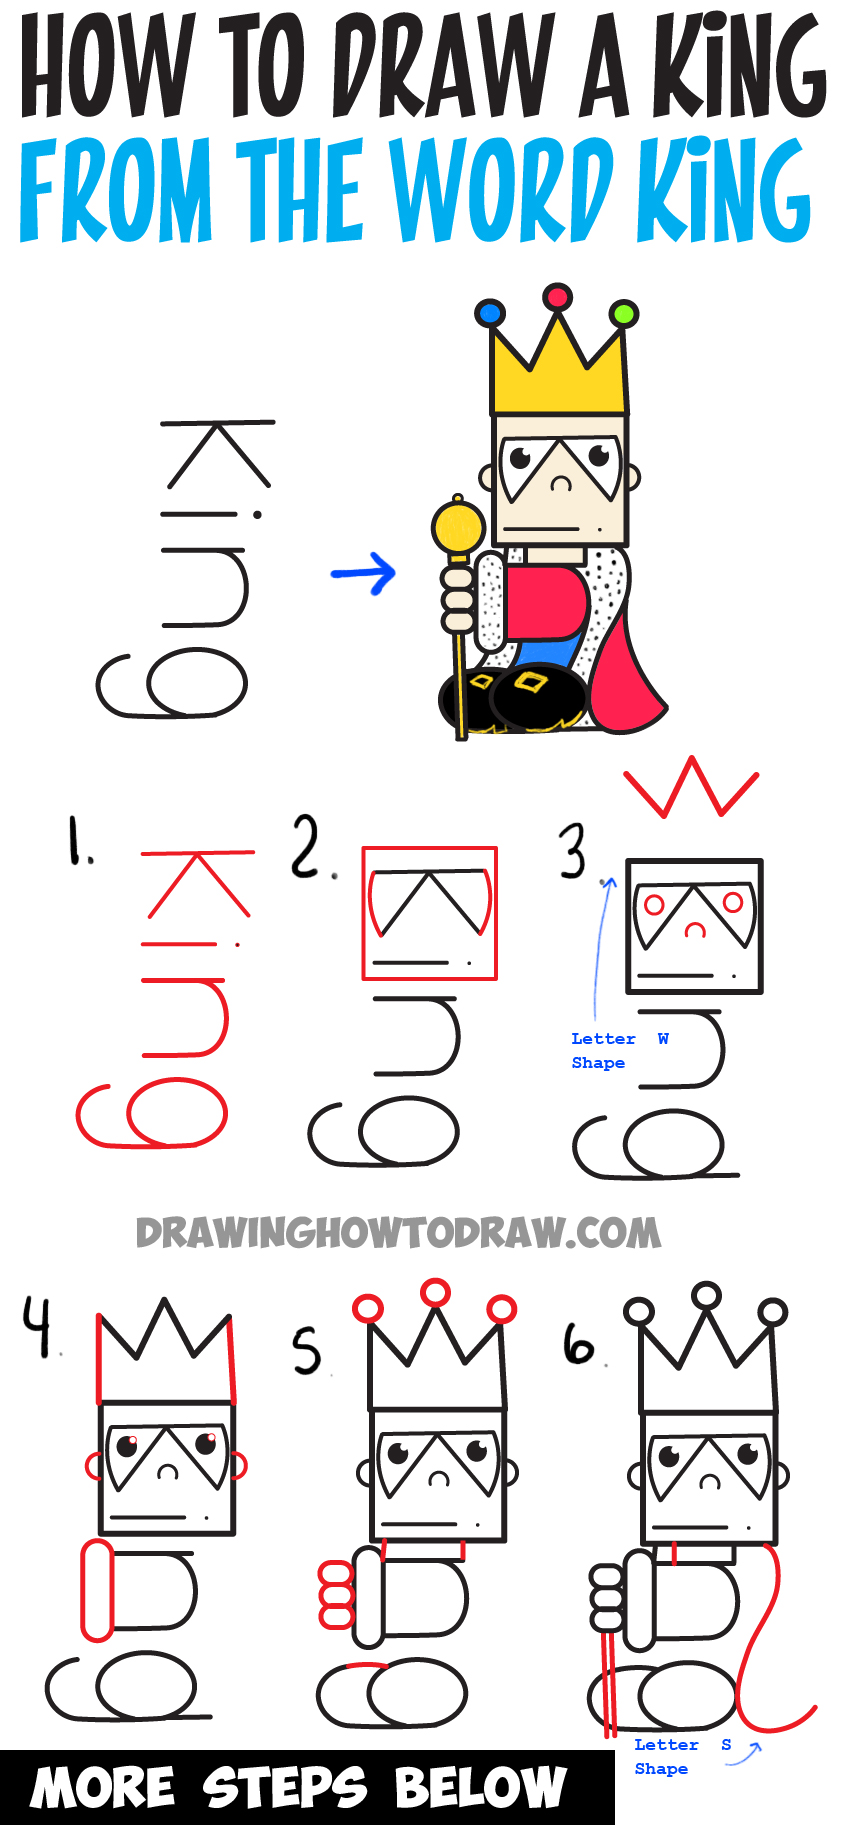 How to Draw Cartoon King from the Word : Easy Step by Step Word Toon for Kids